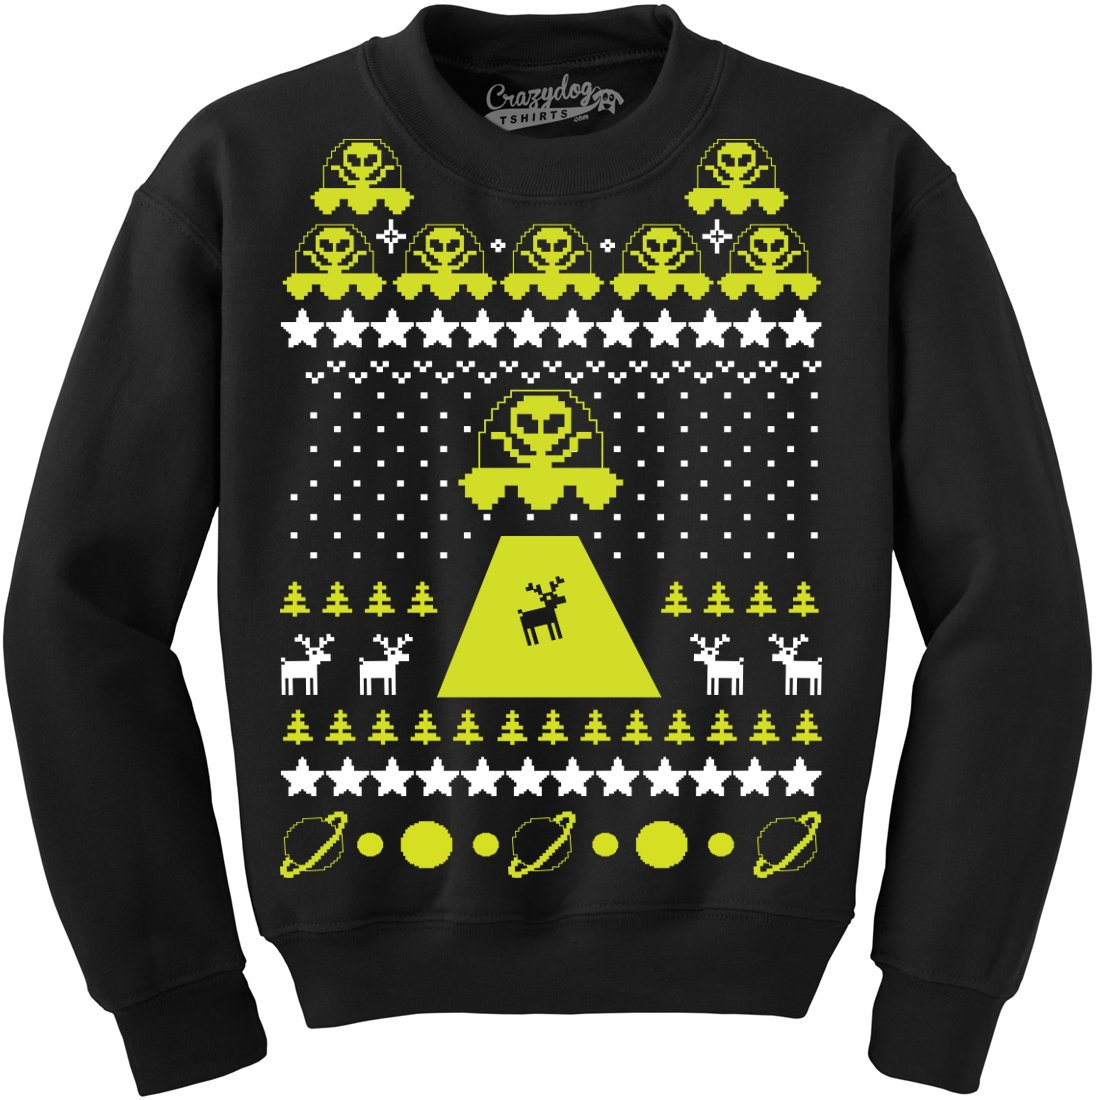 Unisex Alien Abduction Ugly Christmas Sweater Crew Neck Sweatshirt Crazy Dog Tshirts 017AlienAbductionUCSCREW